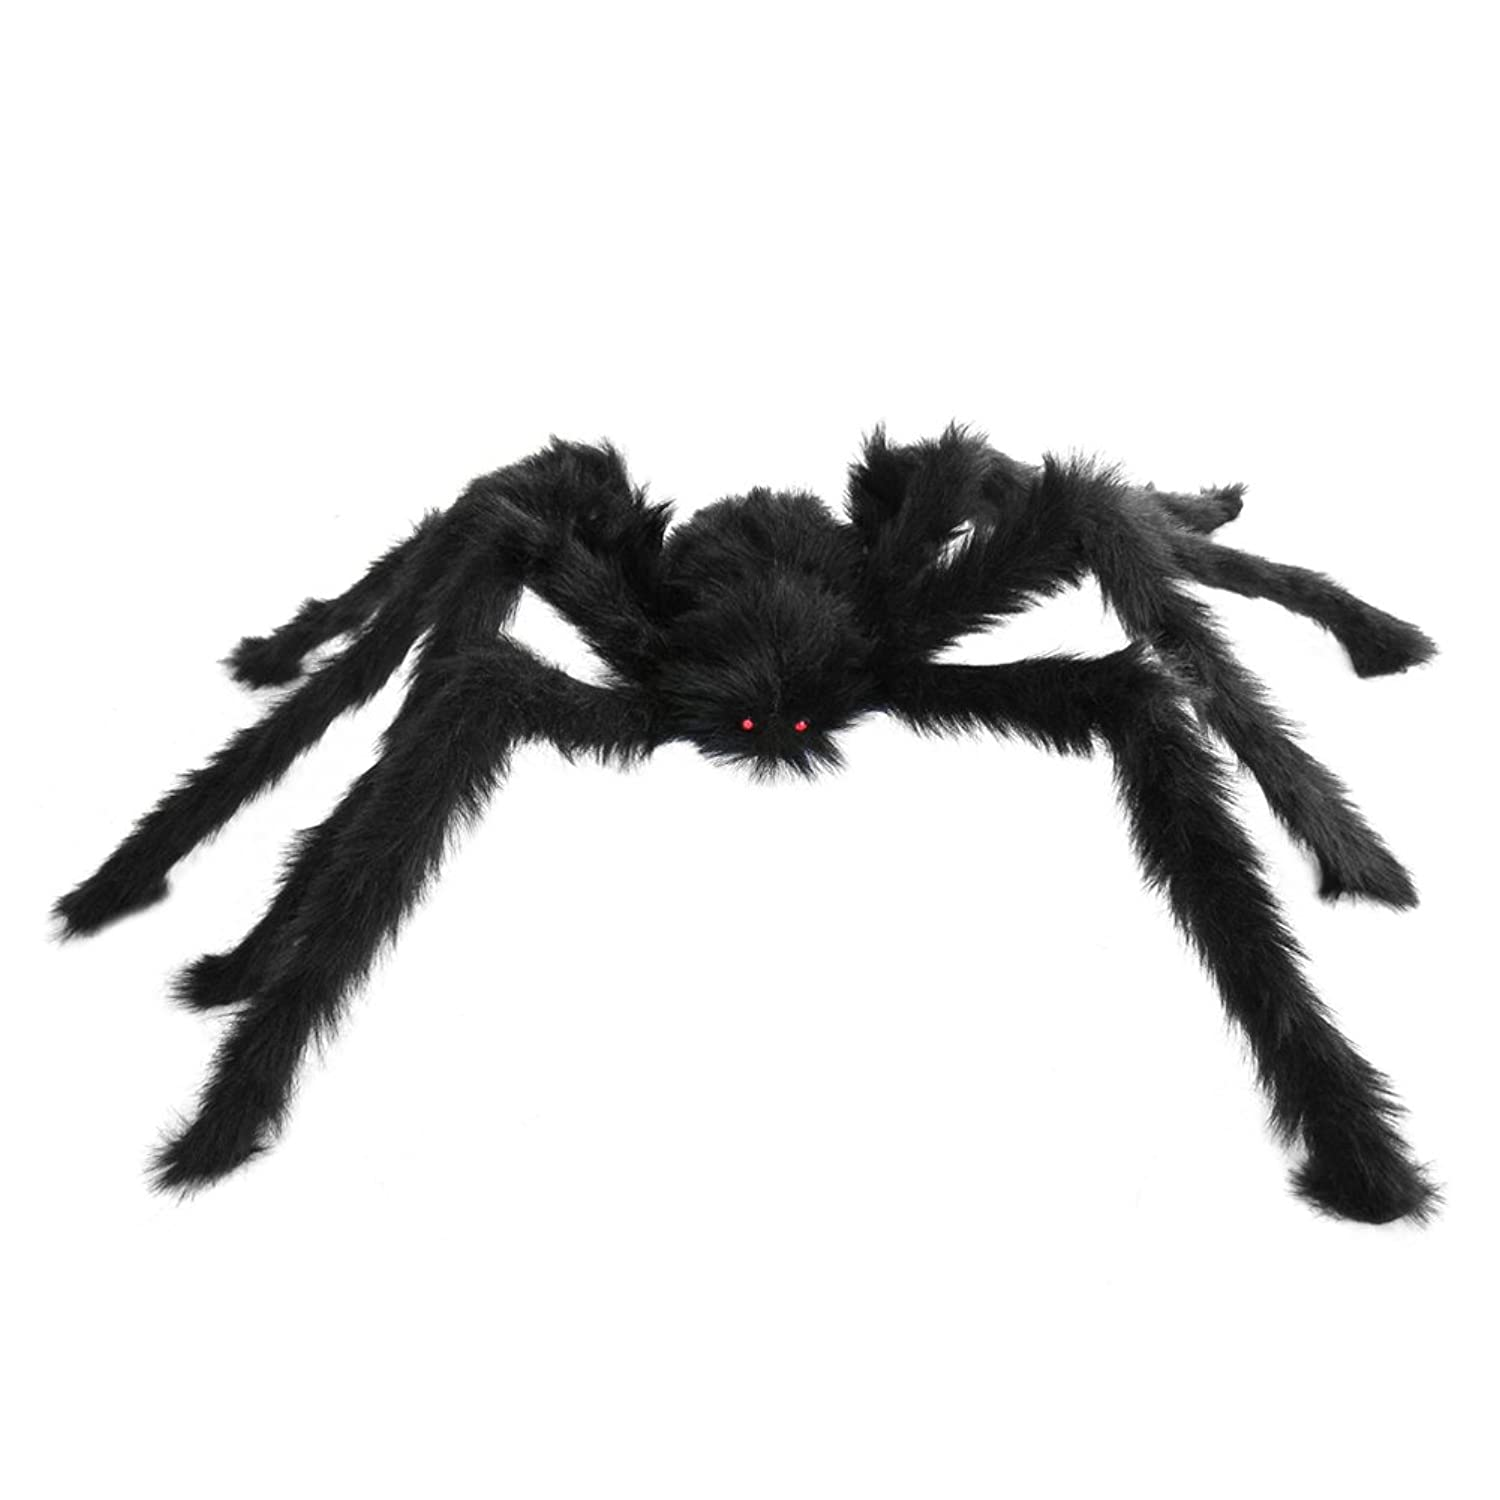 amazoncom seasonstrading large hairy poseable black spider halloween large spider decoration prop clothing - Halloween Spider